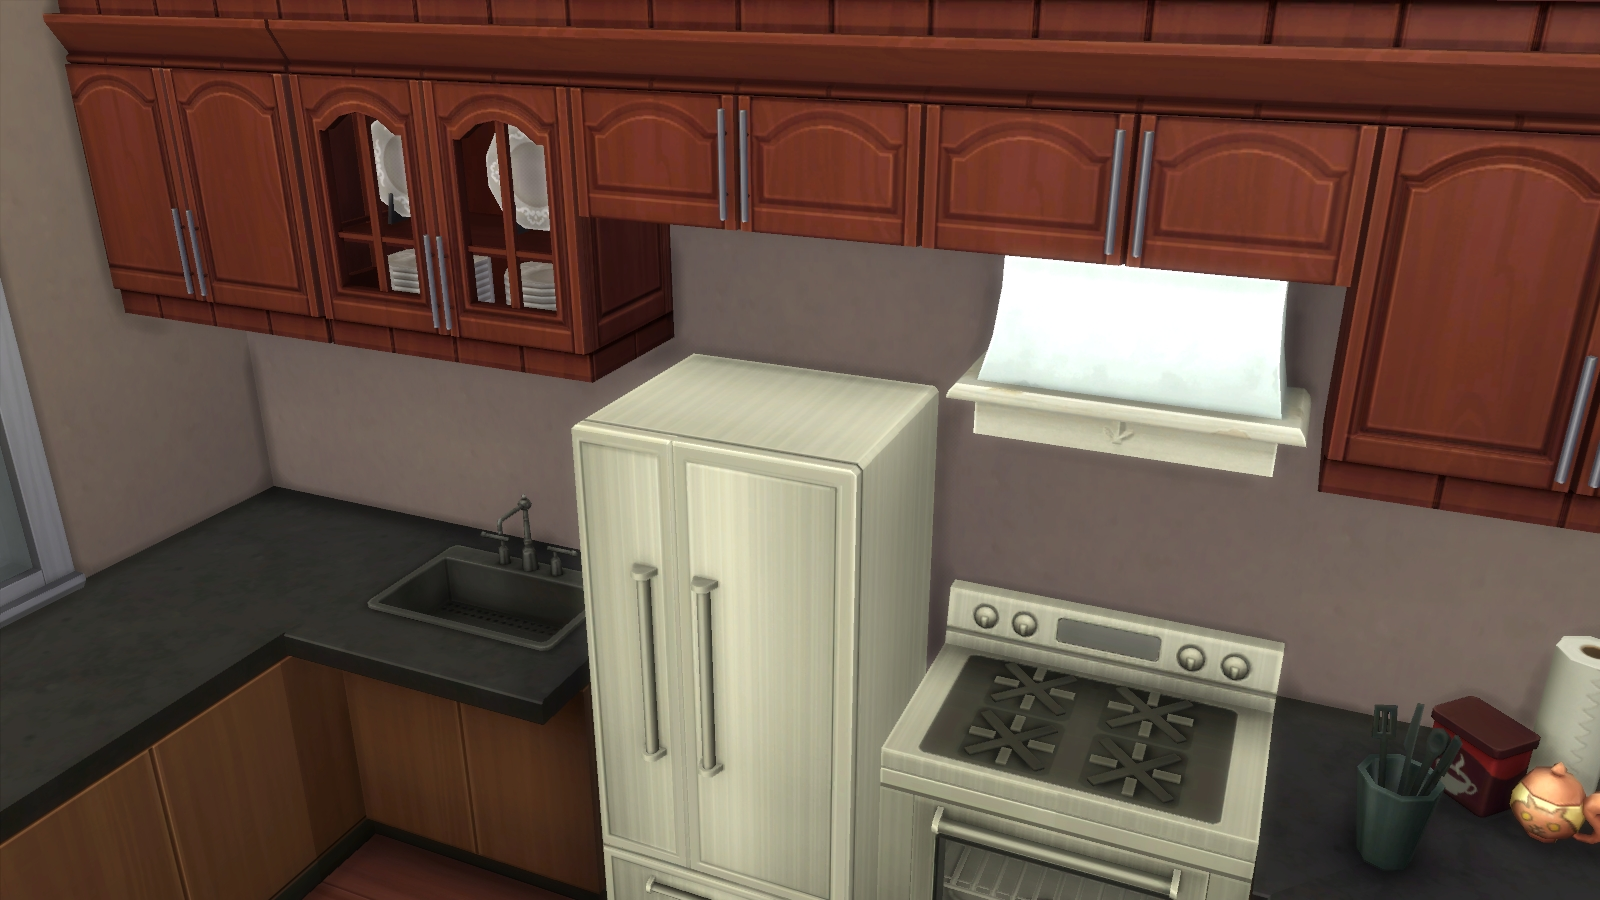 Setting up a bakery in the sims 4 get to work simcitizens Kitchen setting pictures